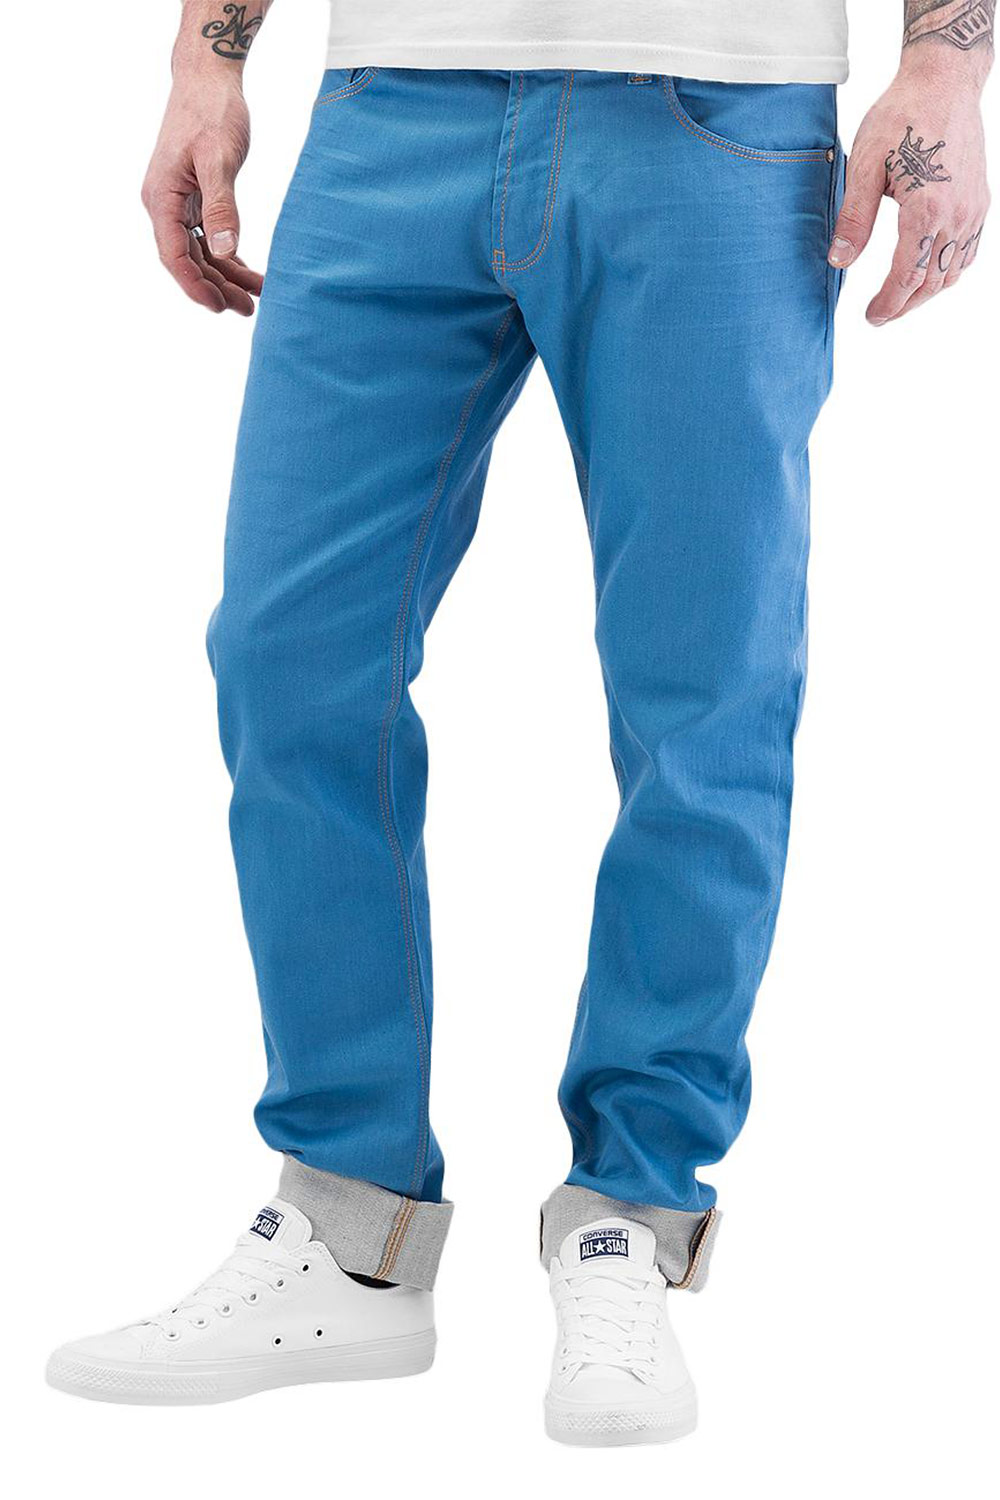 CAZZY CLANG Tone Straight Fit Jeans Blue auf oboy.de